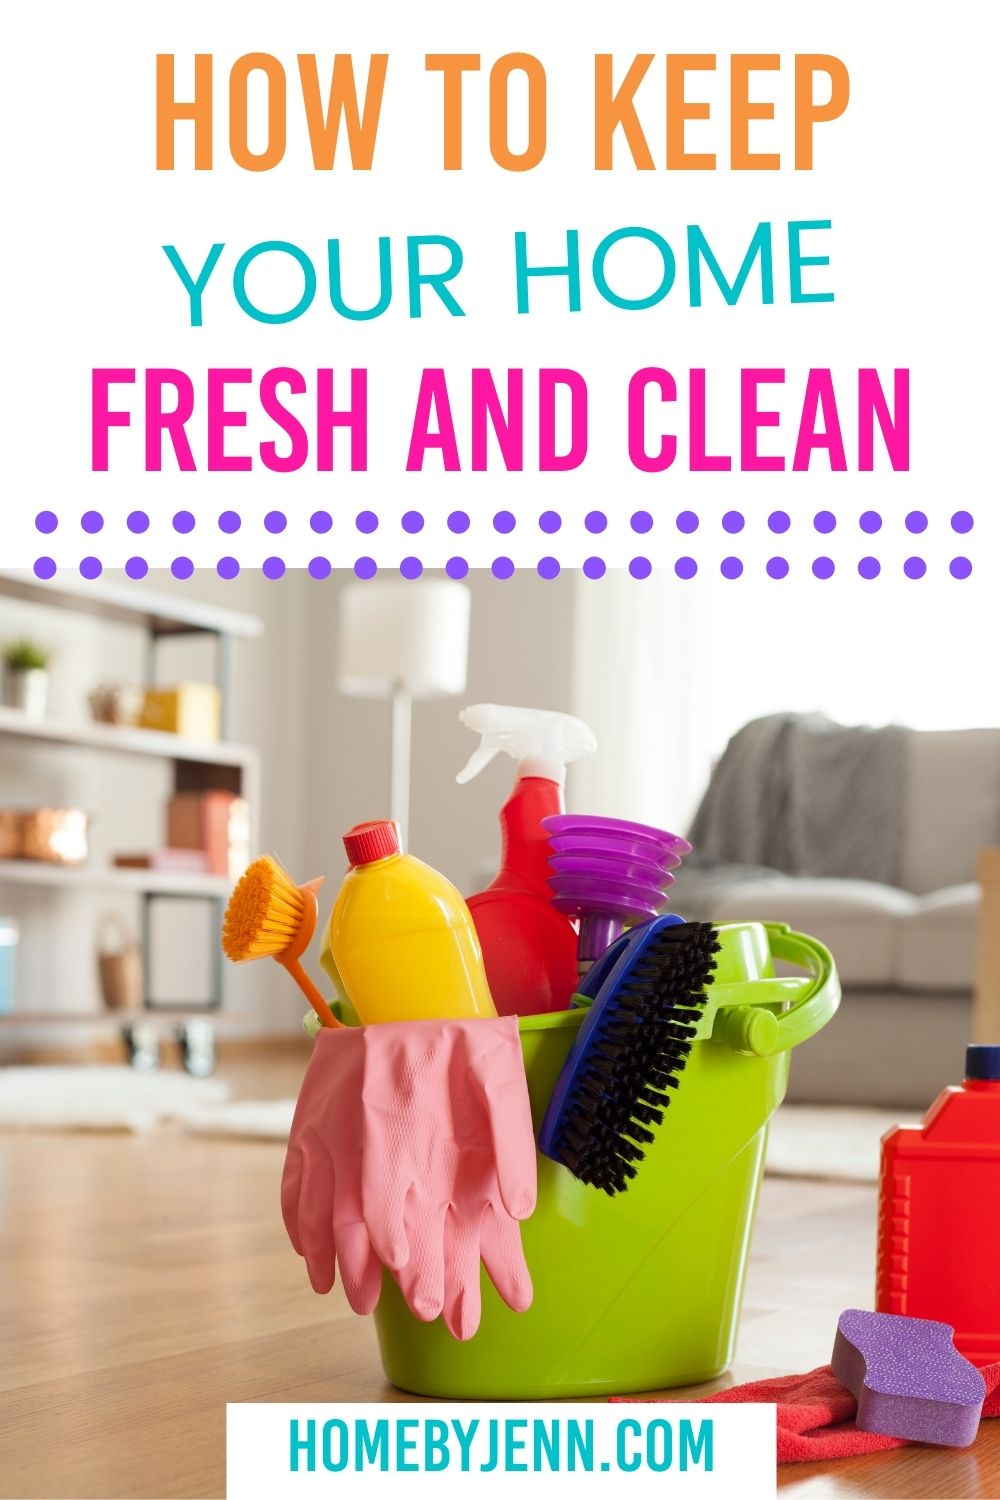 home fresh and clean via @homebyjenn